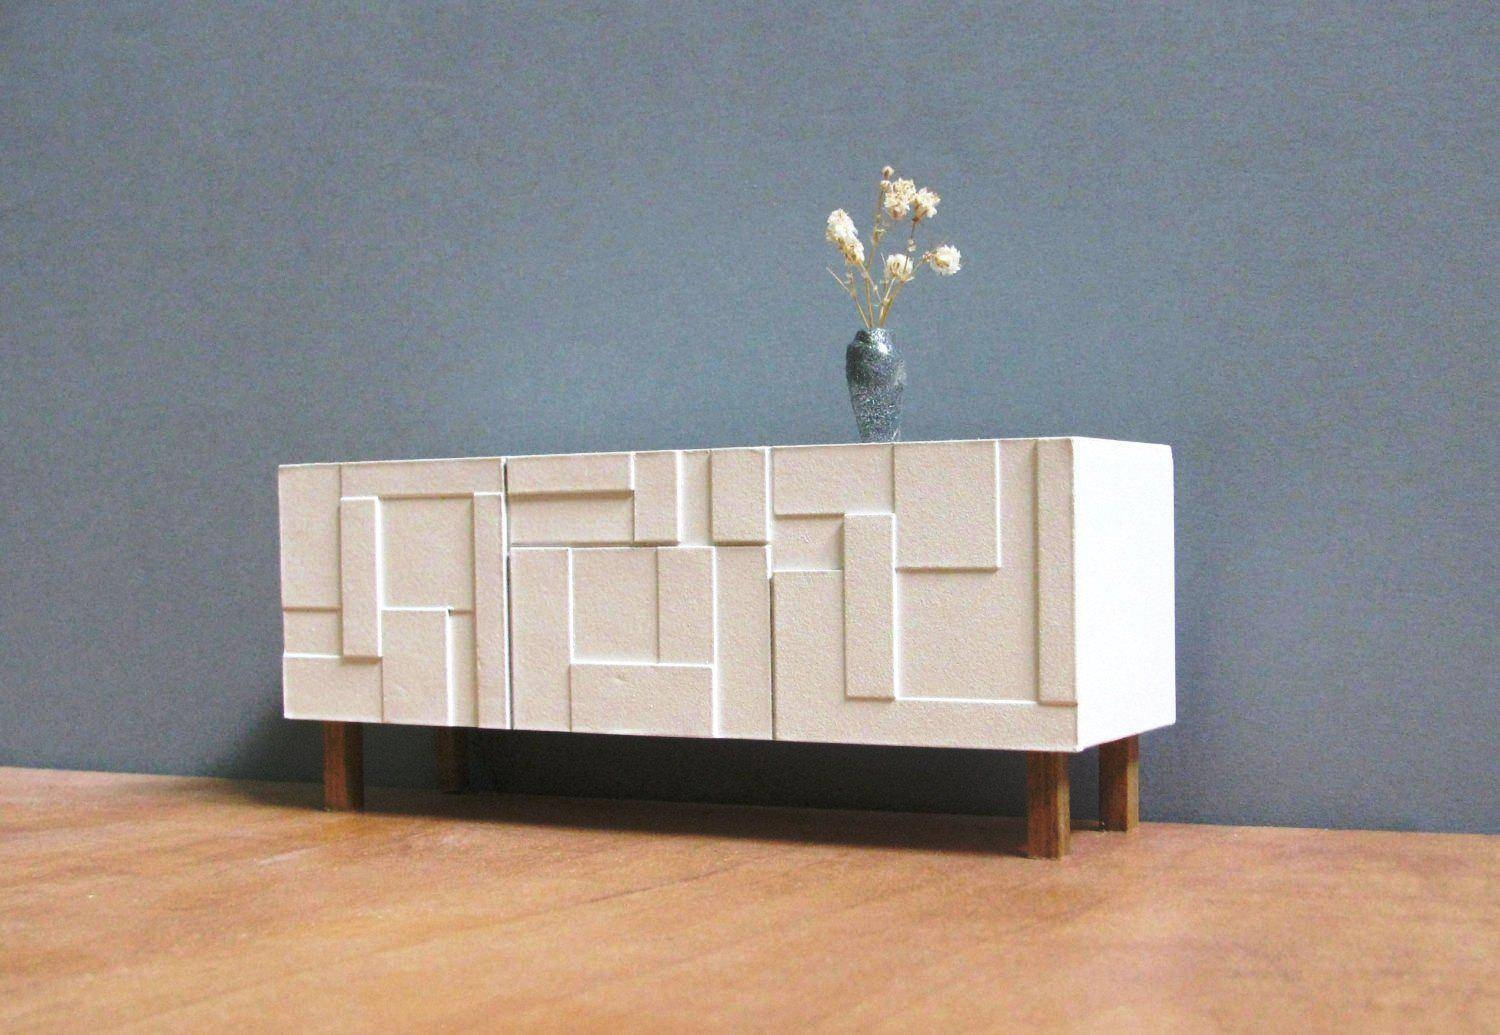 Sideboards. Marvellous Modern Credenza: Modern-Credenza regarding Modern Contemporary Sideboards (Image 28 of 30)